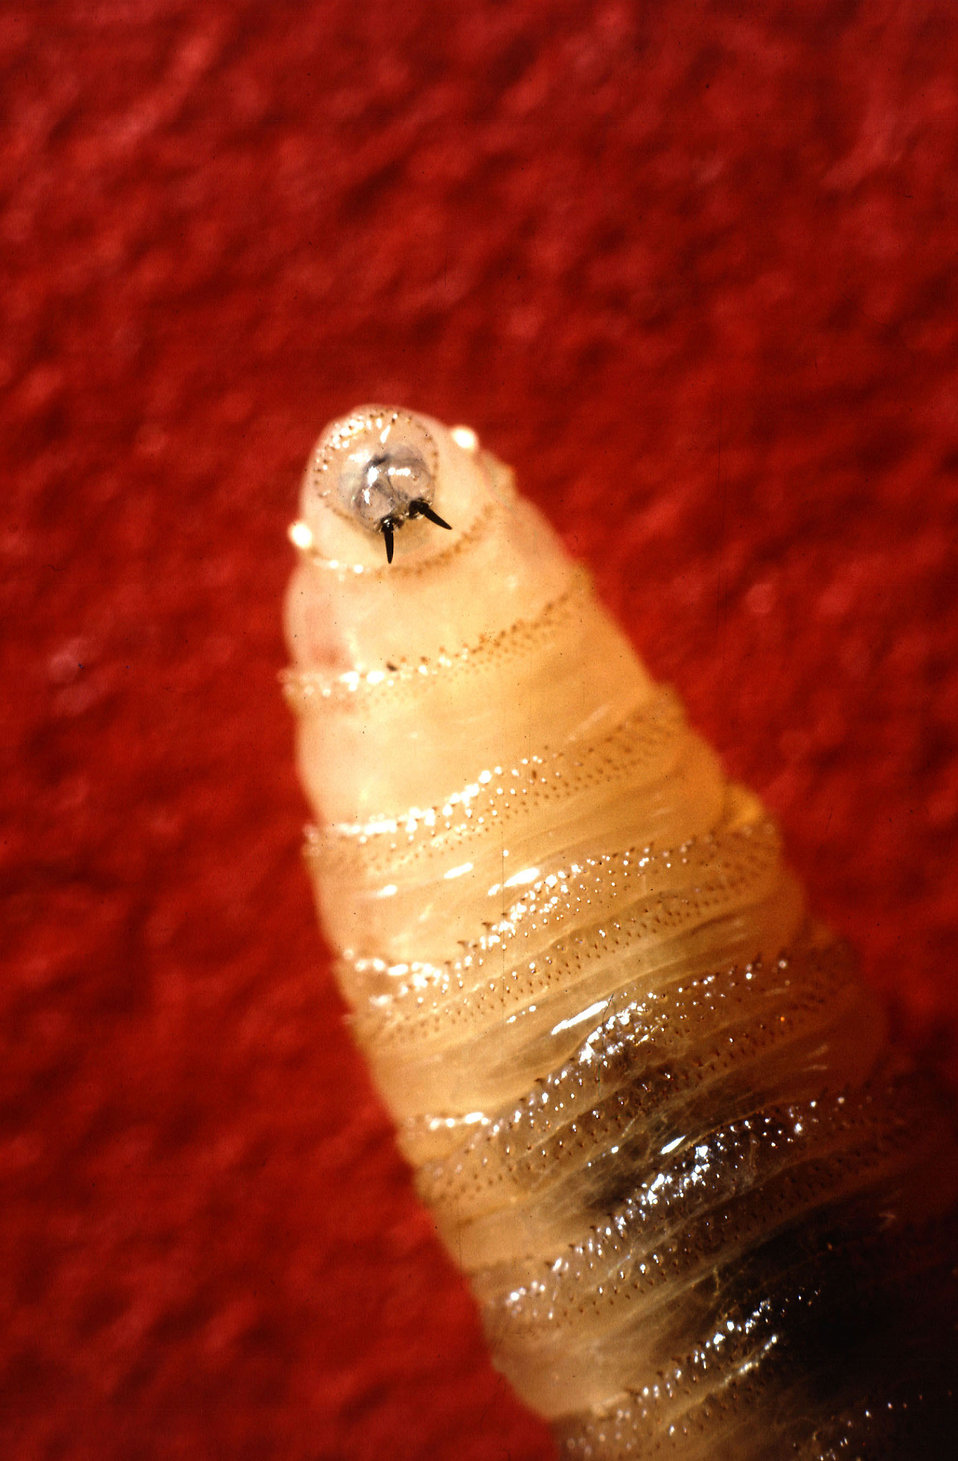 Tusklike mandibles protruding from the screwworm larva's mouth : Free Stock Photo